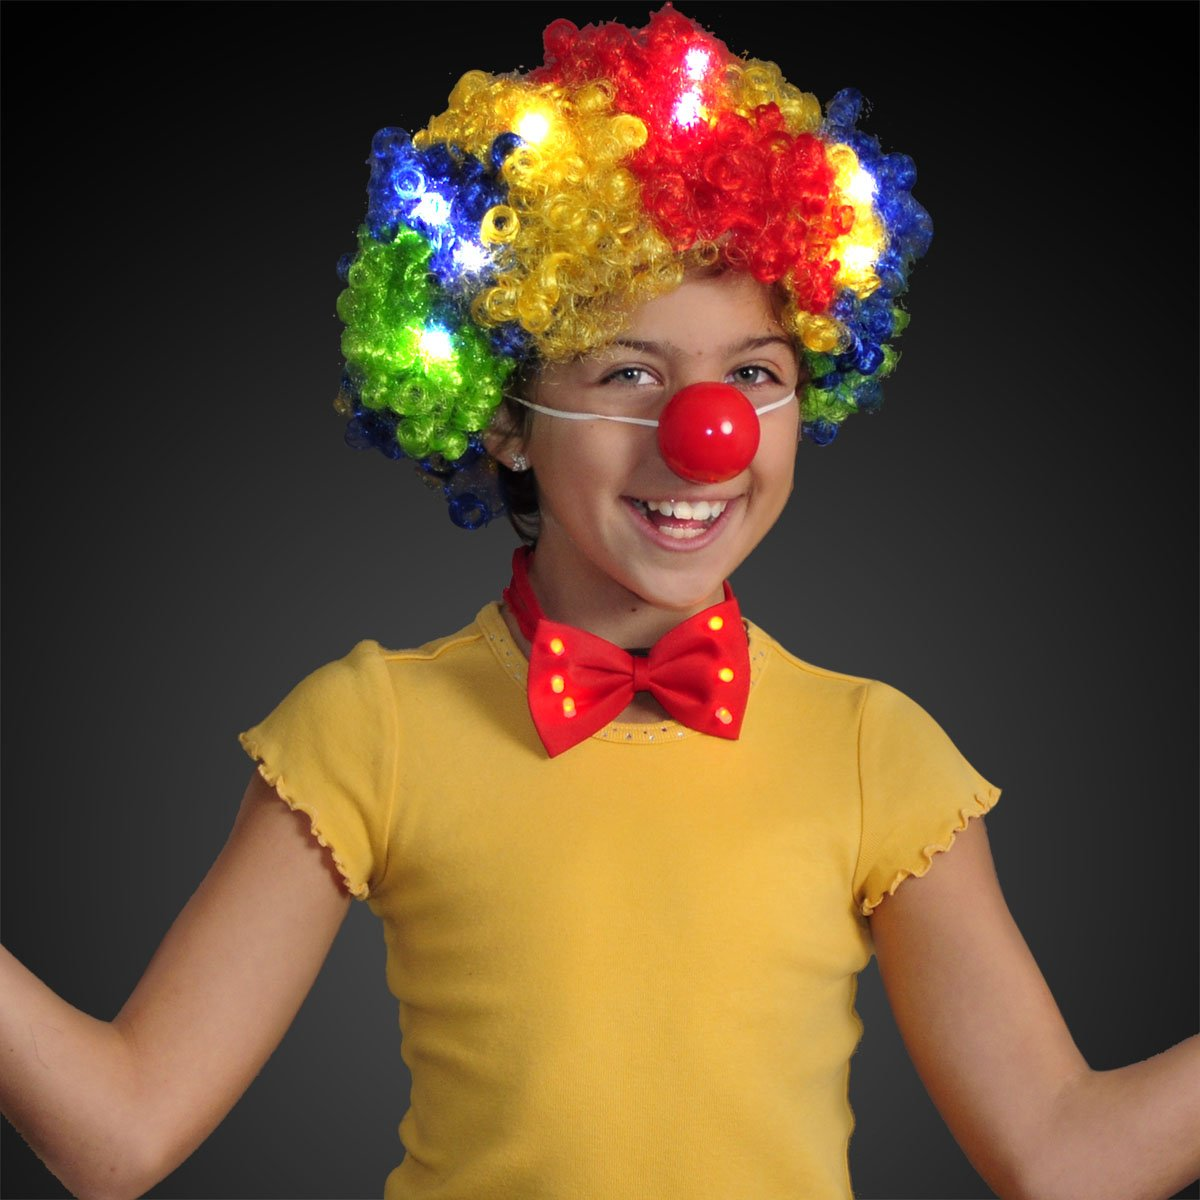 Curly Rainbow Clown Wig with Flashing LEDs